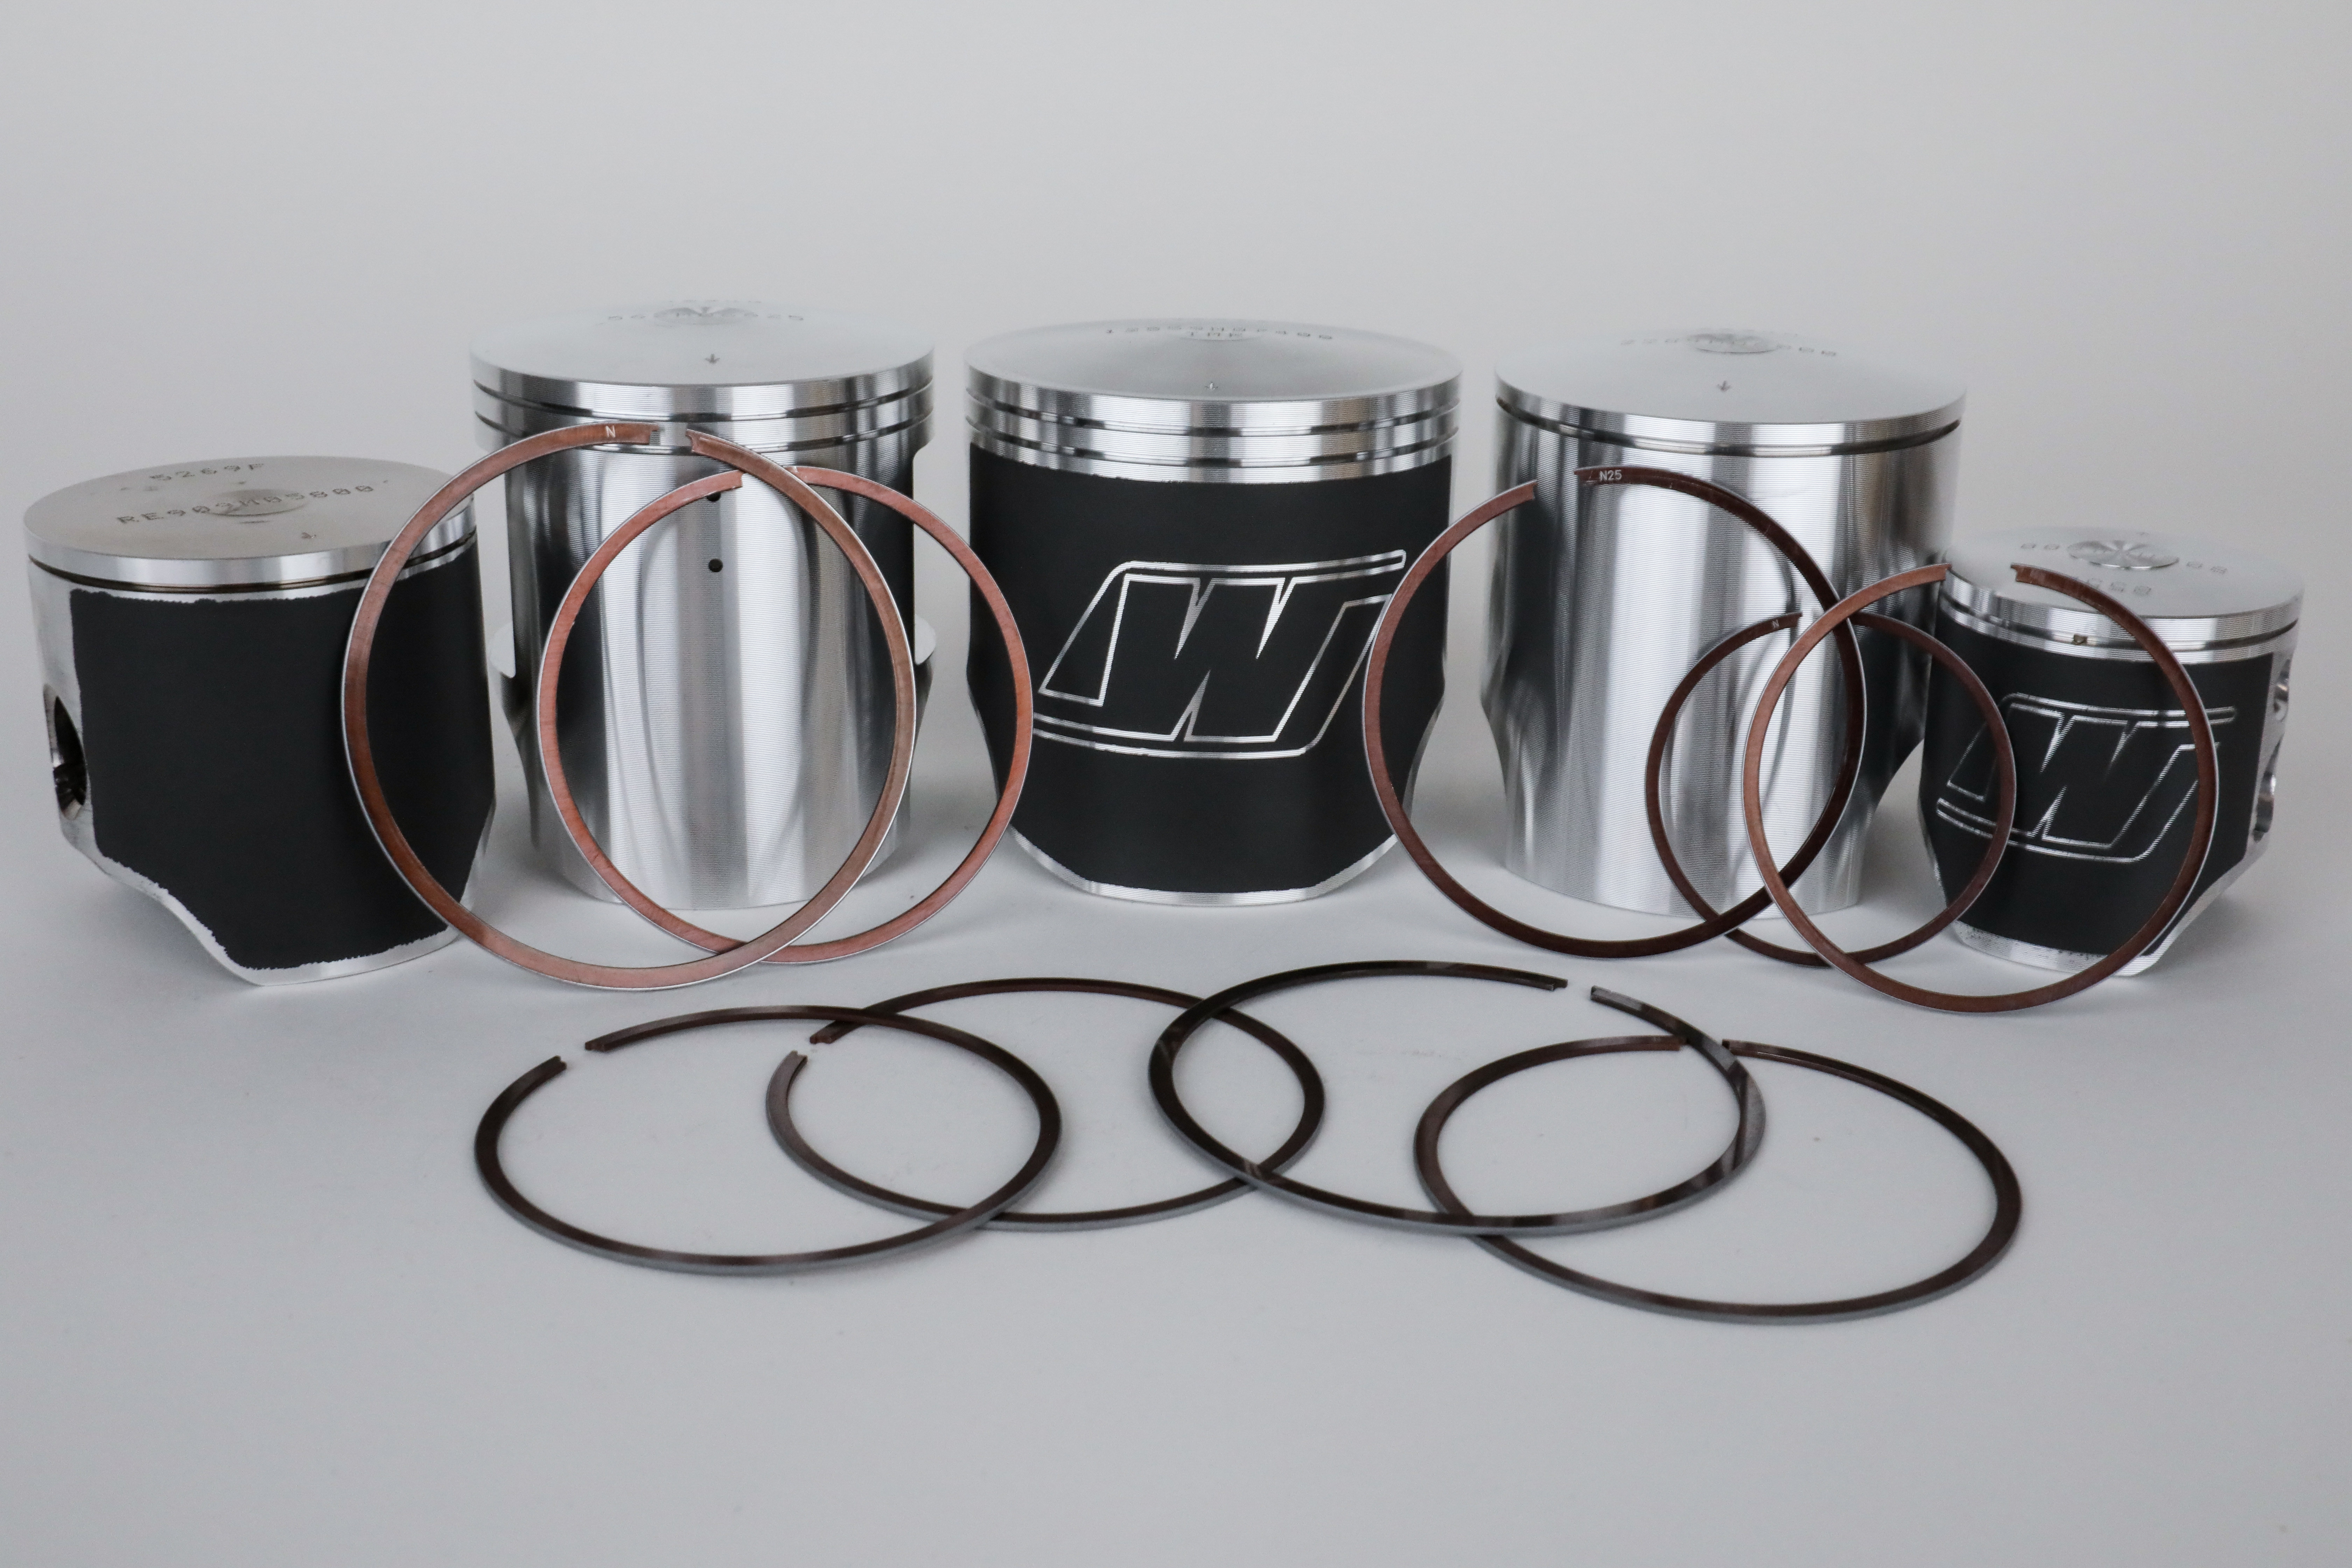 Single-Ring vs. Two-Ring 2-Stroke Pistons: Which One is Better?